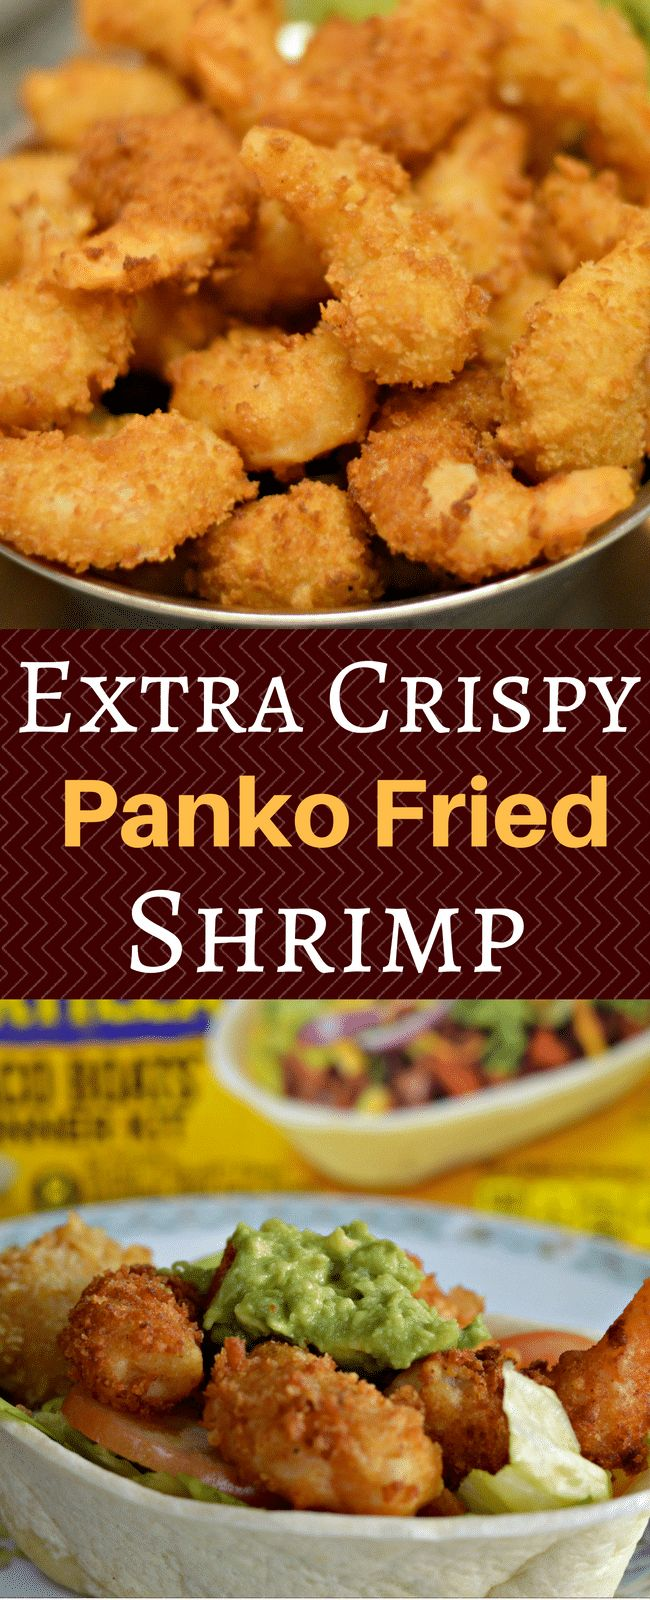 These Extra Crispy Panko Fried Shrimp are delicious and are perfect on their own or in a delicious taco bowl. Enjoy!